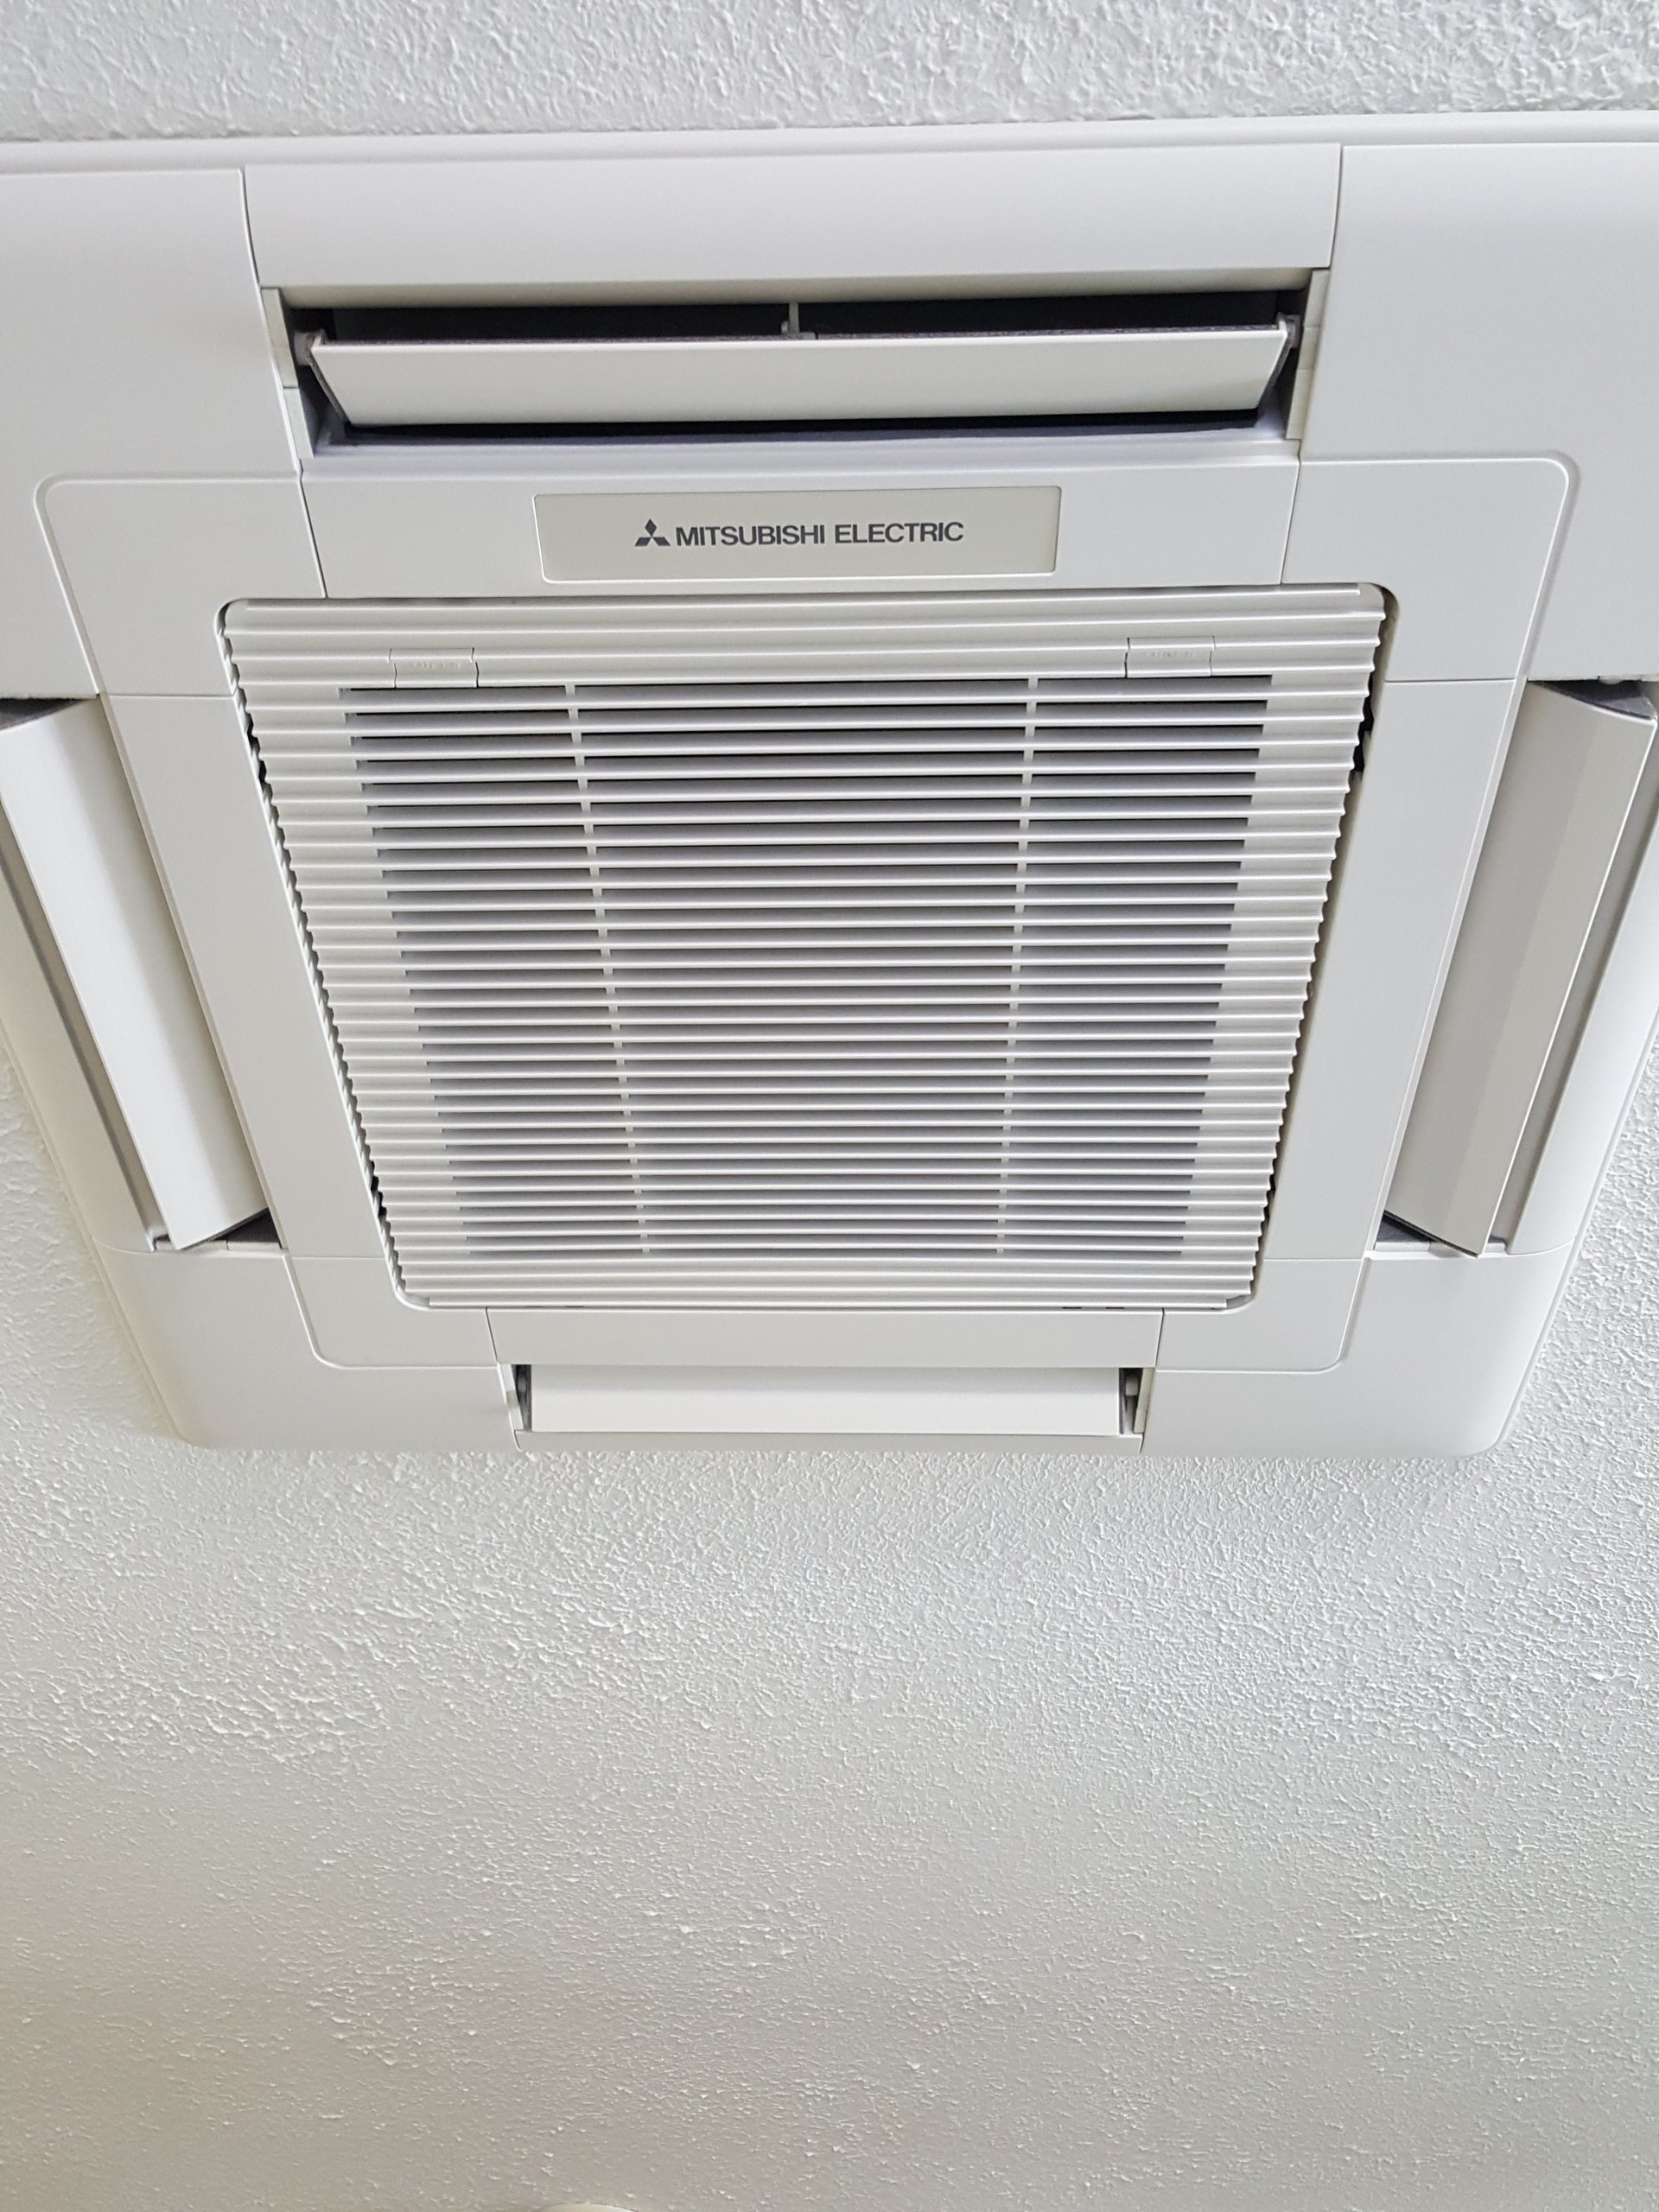 Deliver Precision Comfort The Way Mitsubishi Electric Vrf Zoning Can